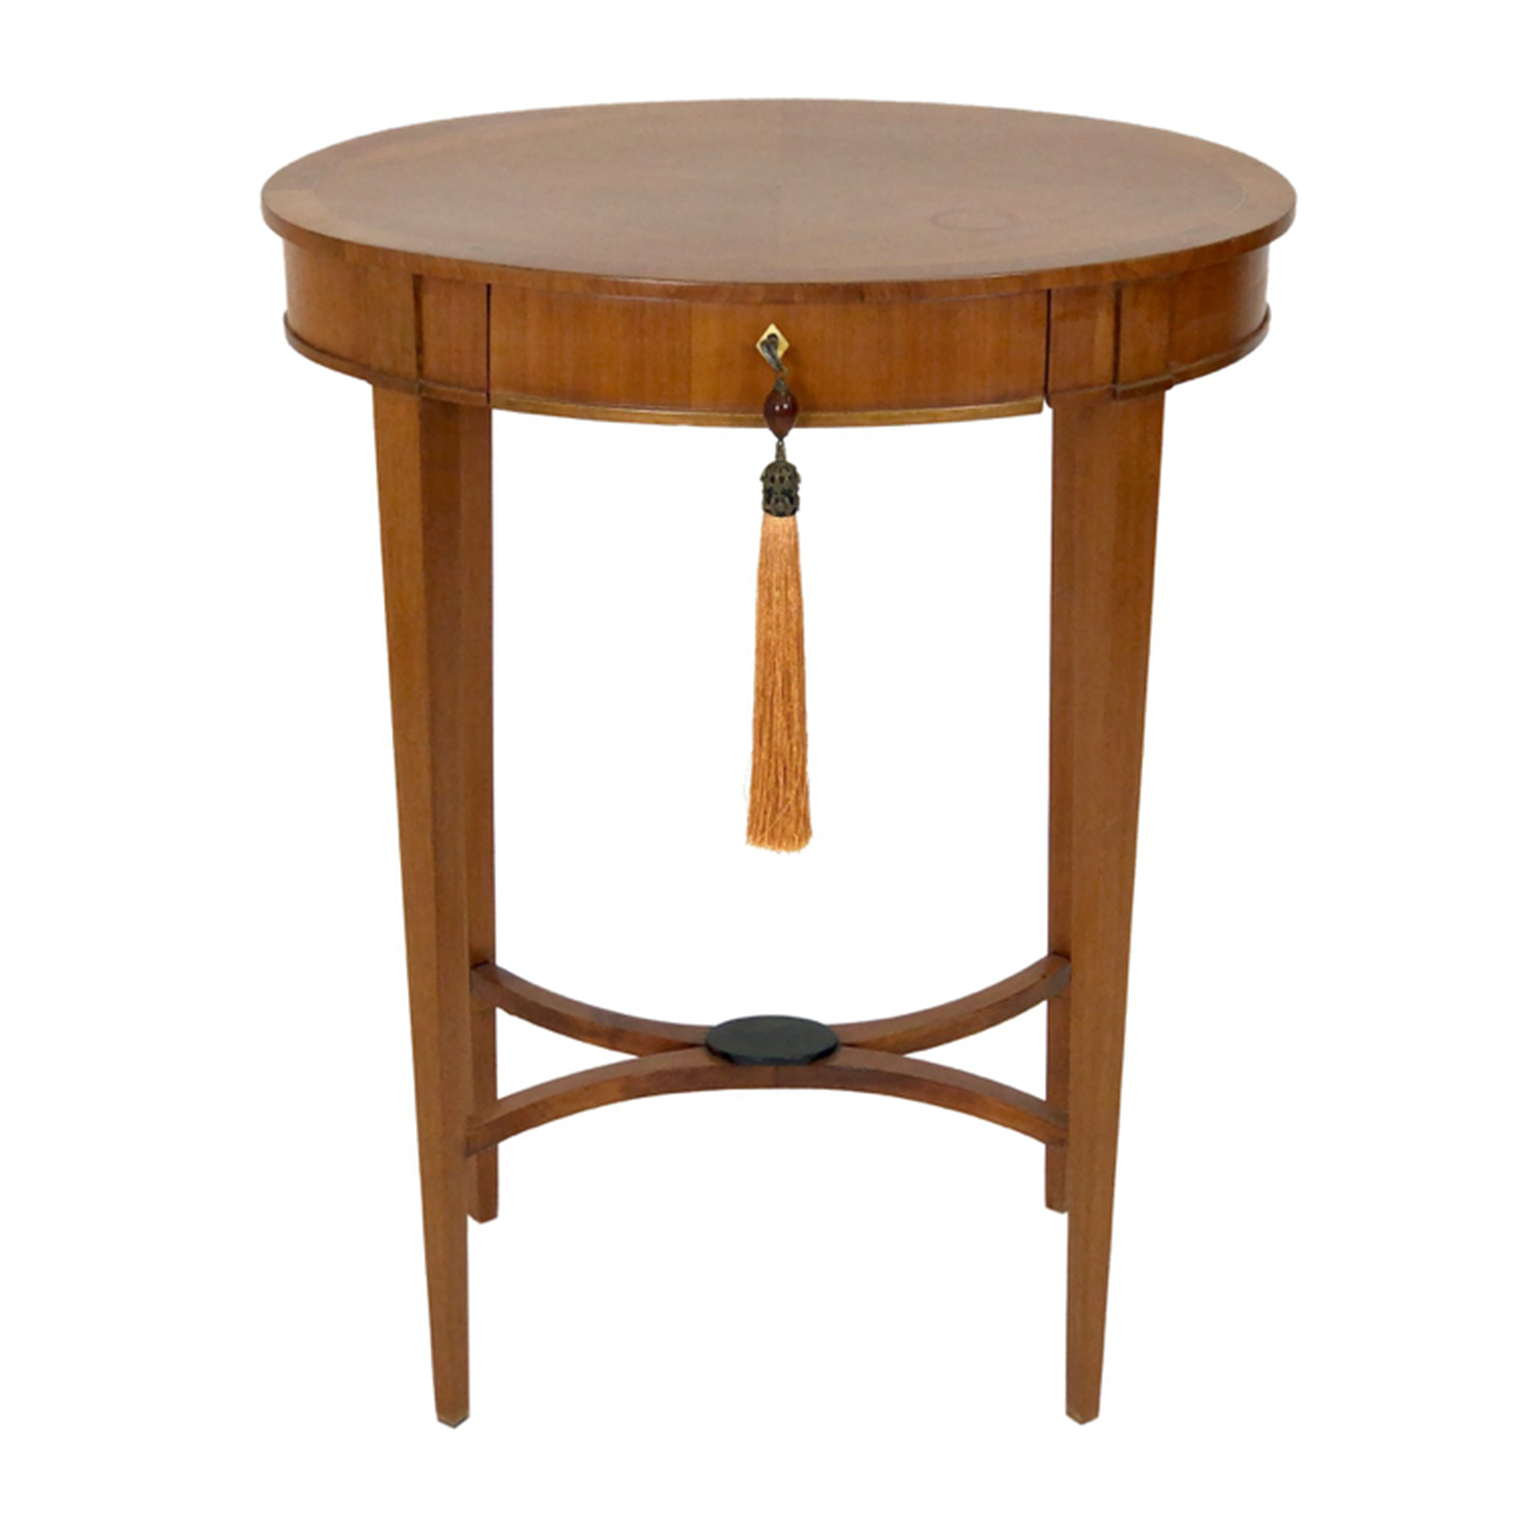 Antique Light brown cherry wood side table with drawer